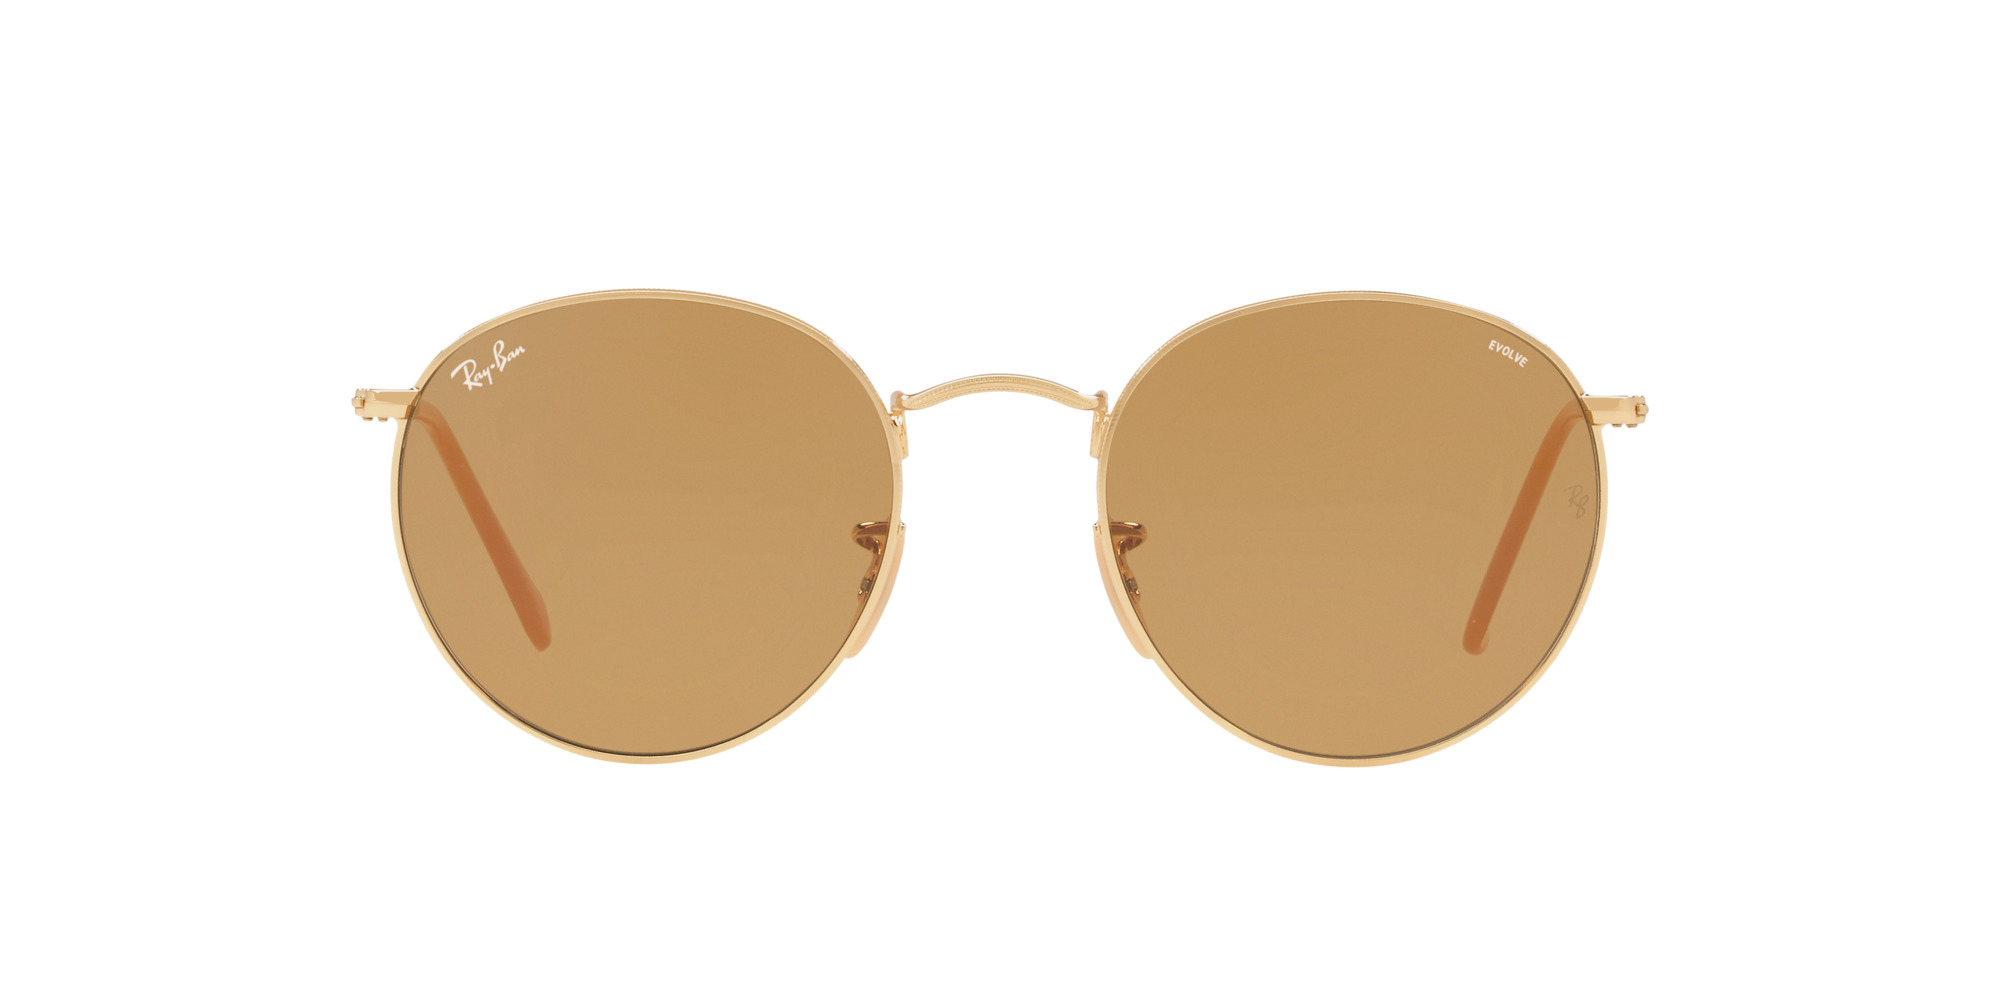 RAY-BAN ROUND METAL RB 3447 90644I FOTOCROMÁTICAS-360